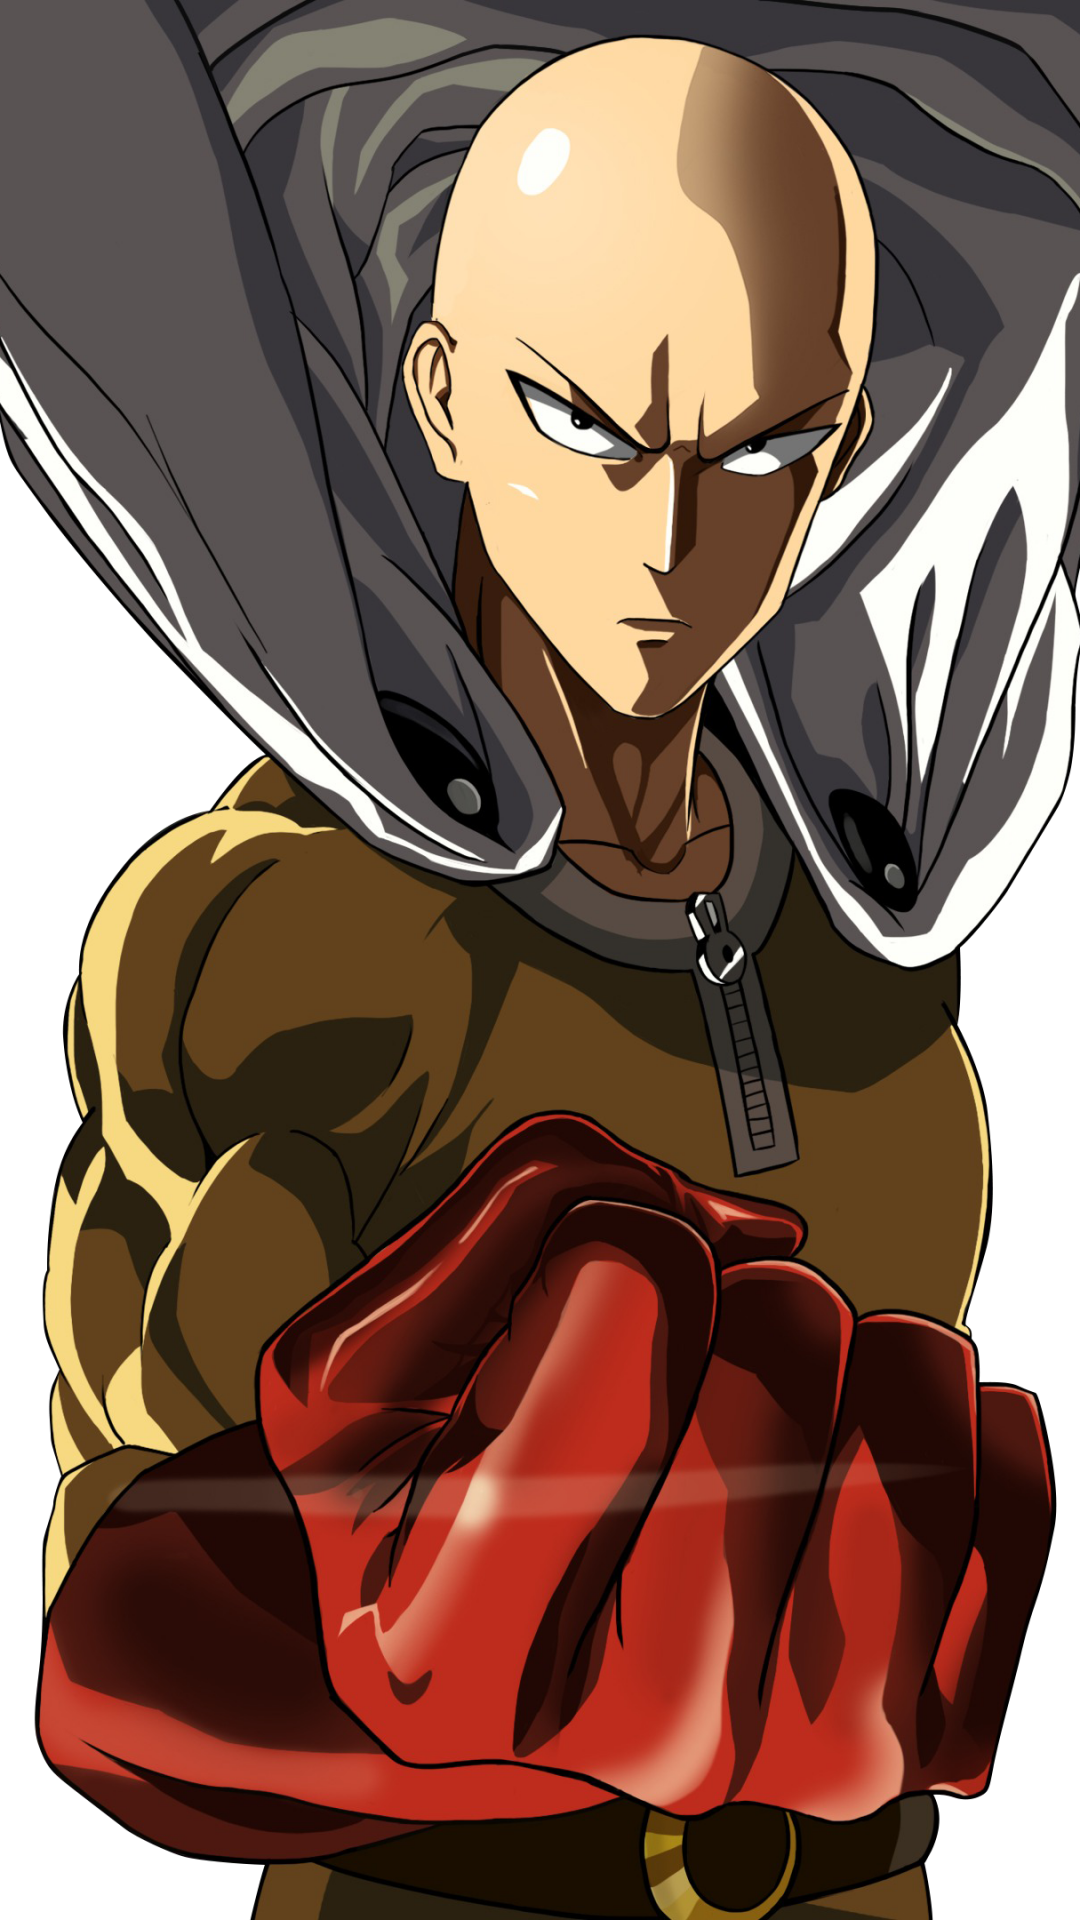 One Punch Man Hd Wallpaper For Iphone in 2020 One punch